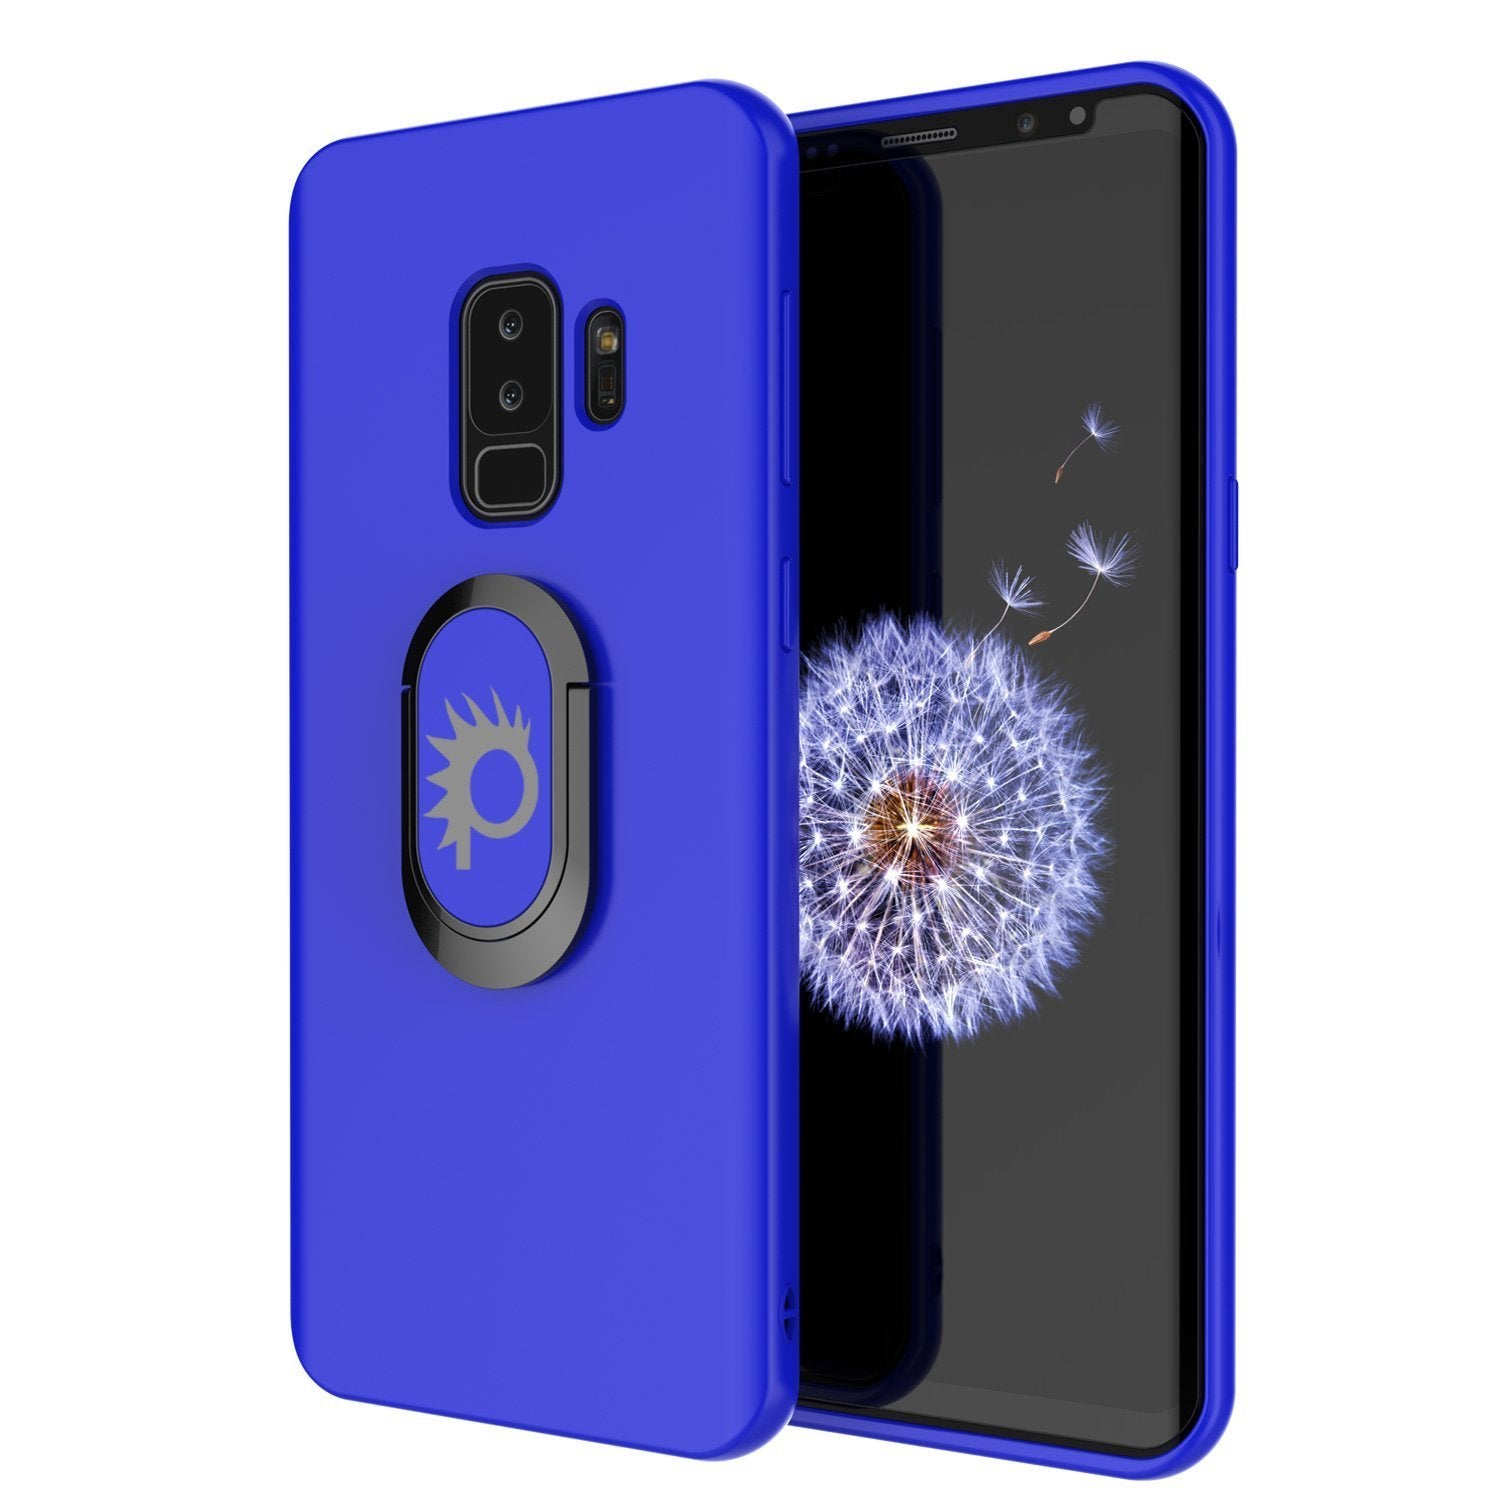 Galaxy S9 PLUS, Punkcase Magnetix Protective TPU Cover W/ Kickstand, Ring Grip Holder & Metal Plate for Magnetic Car Phone Mount PLUS PunkShield Screen Protector for Samsung S9+ Edge [Blue]